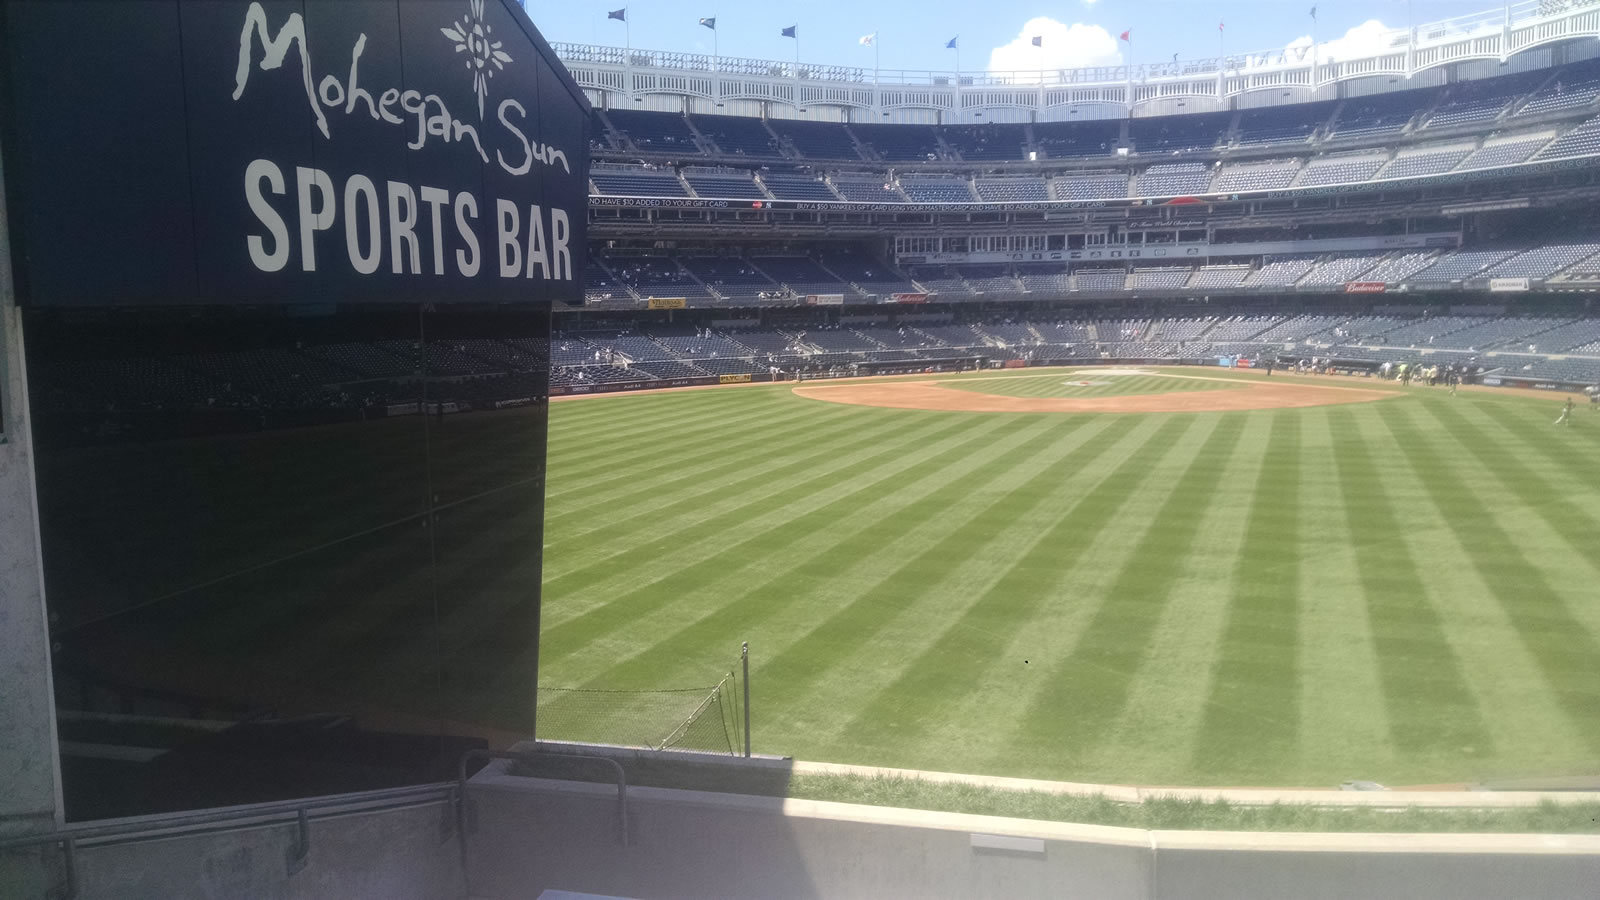 New York Yankees Seat View for Yankee Stadium Section 239, Row 9, Seat 19